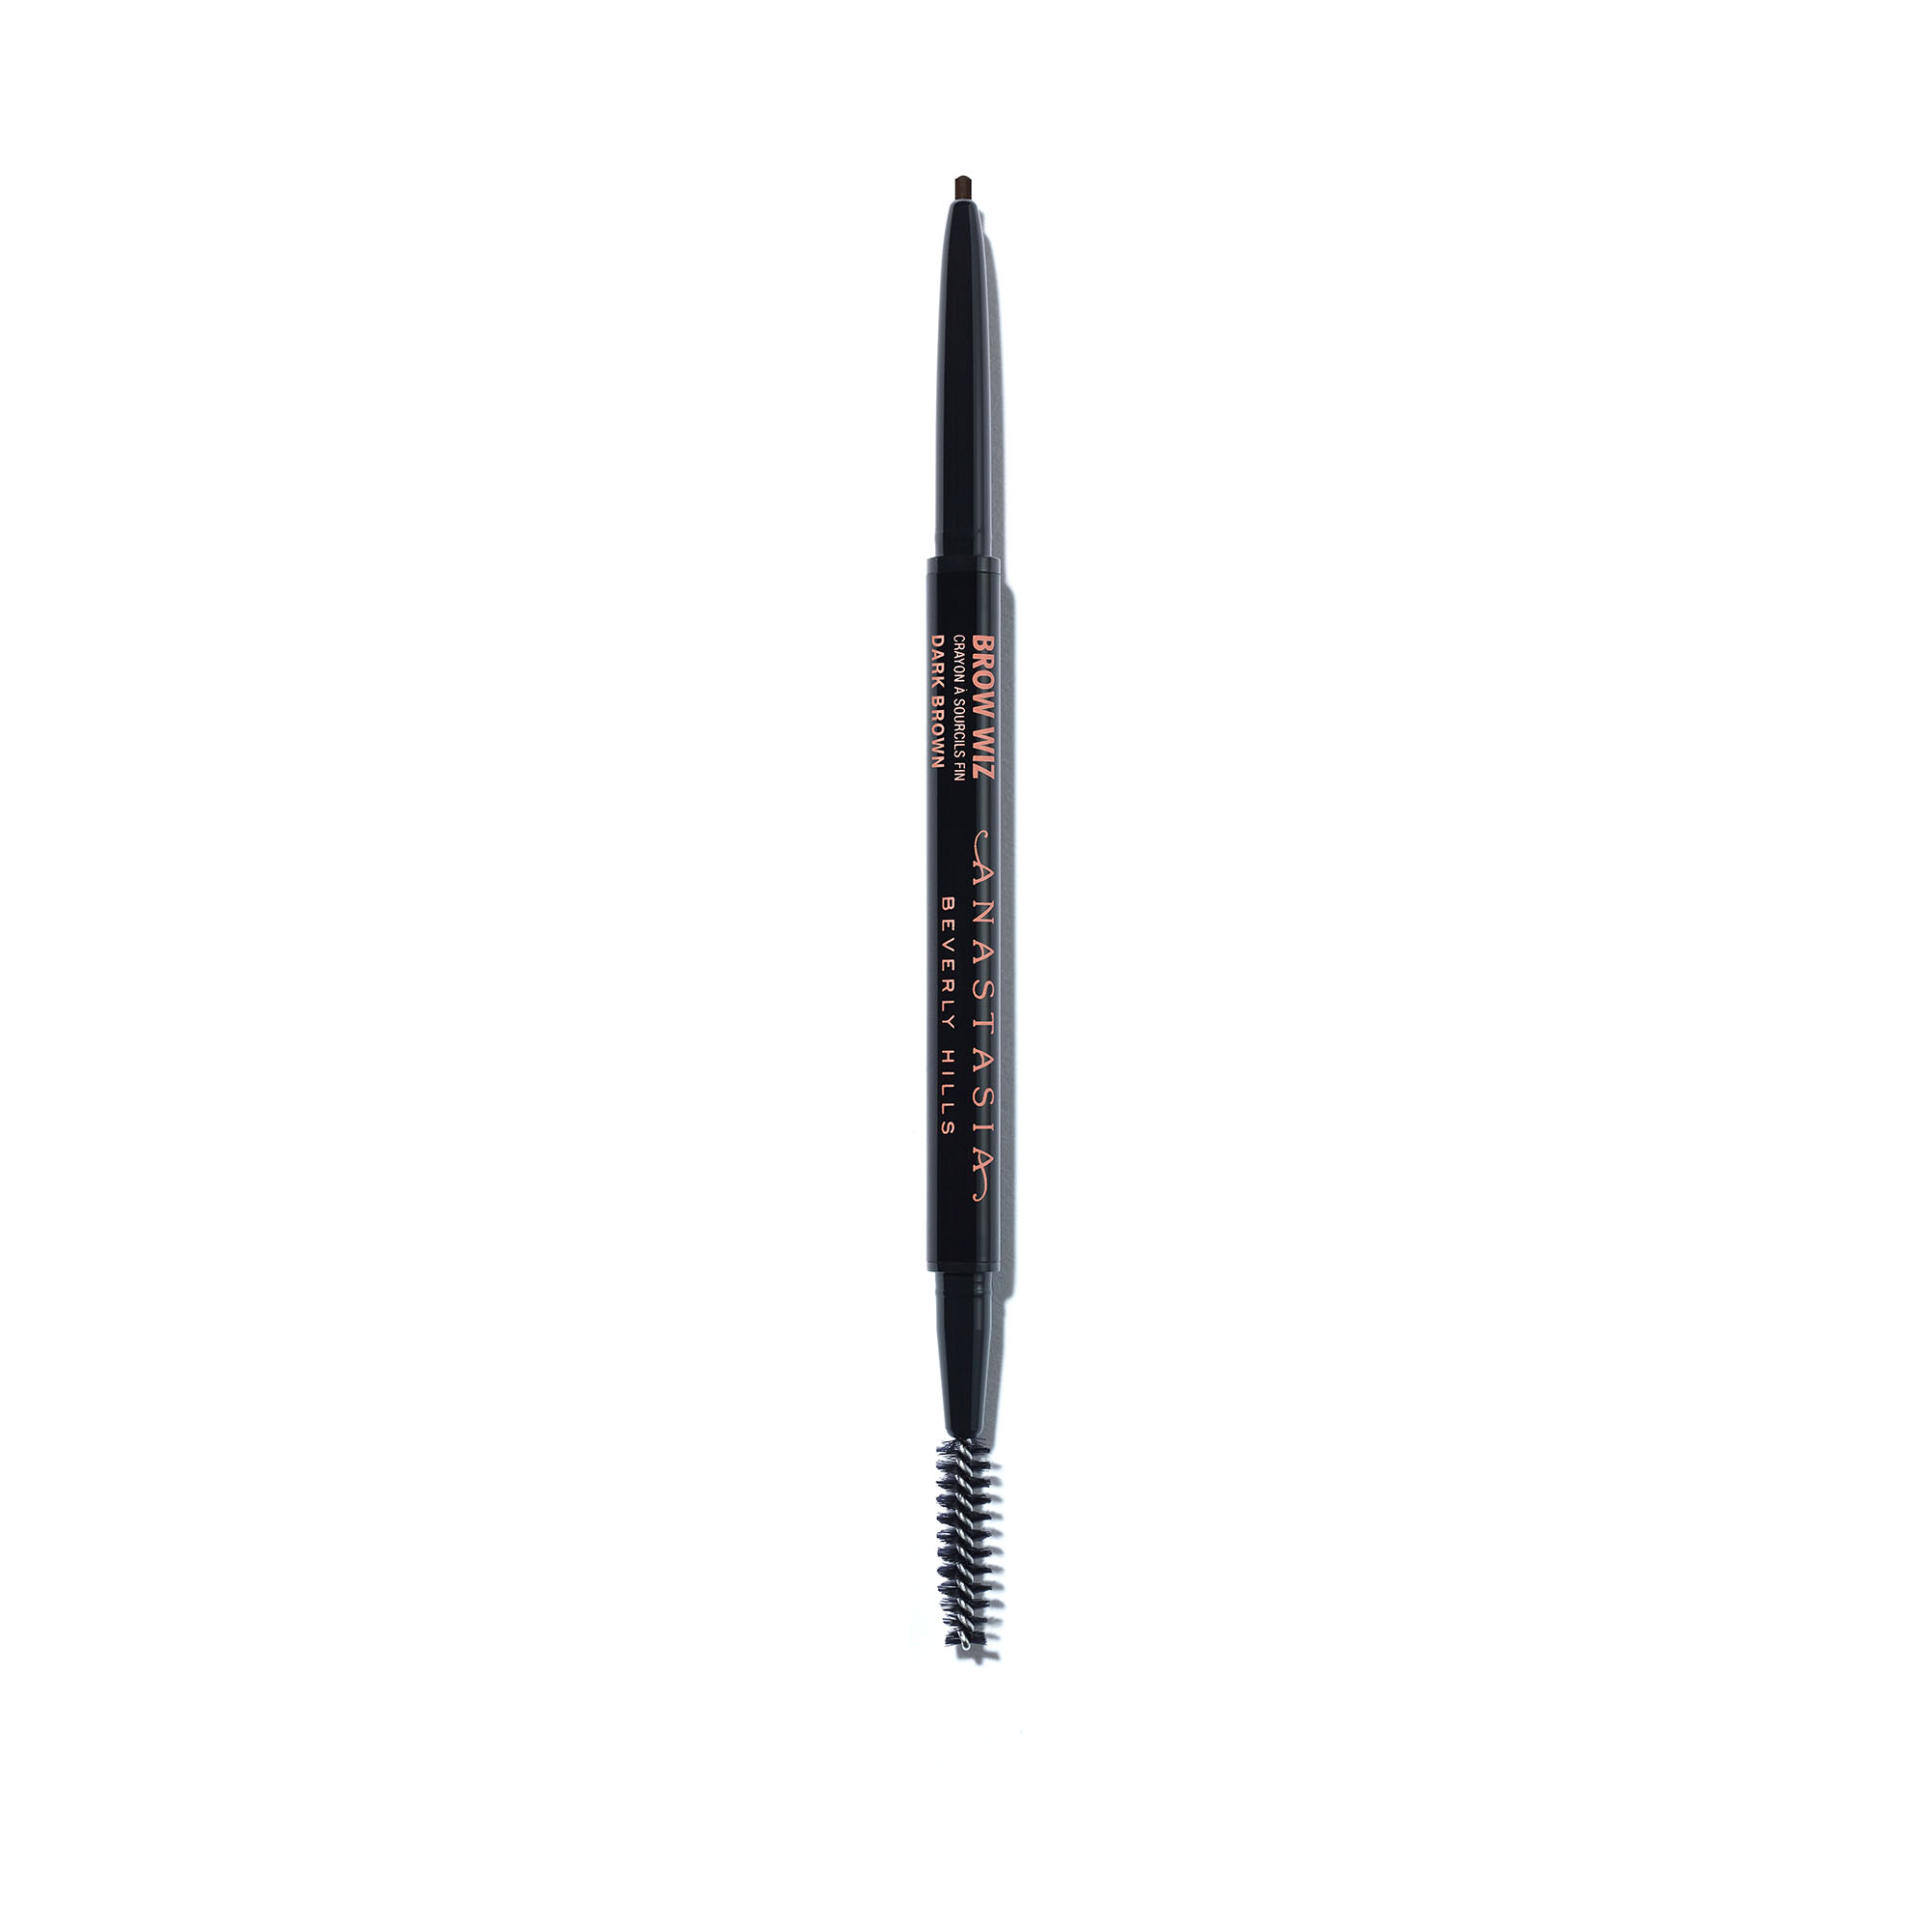 Brow Wiz Fine Eyebrow Pencil Anastasia Beverly Hills